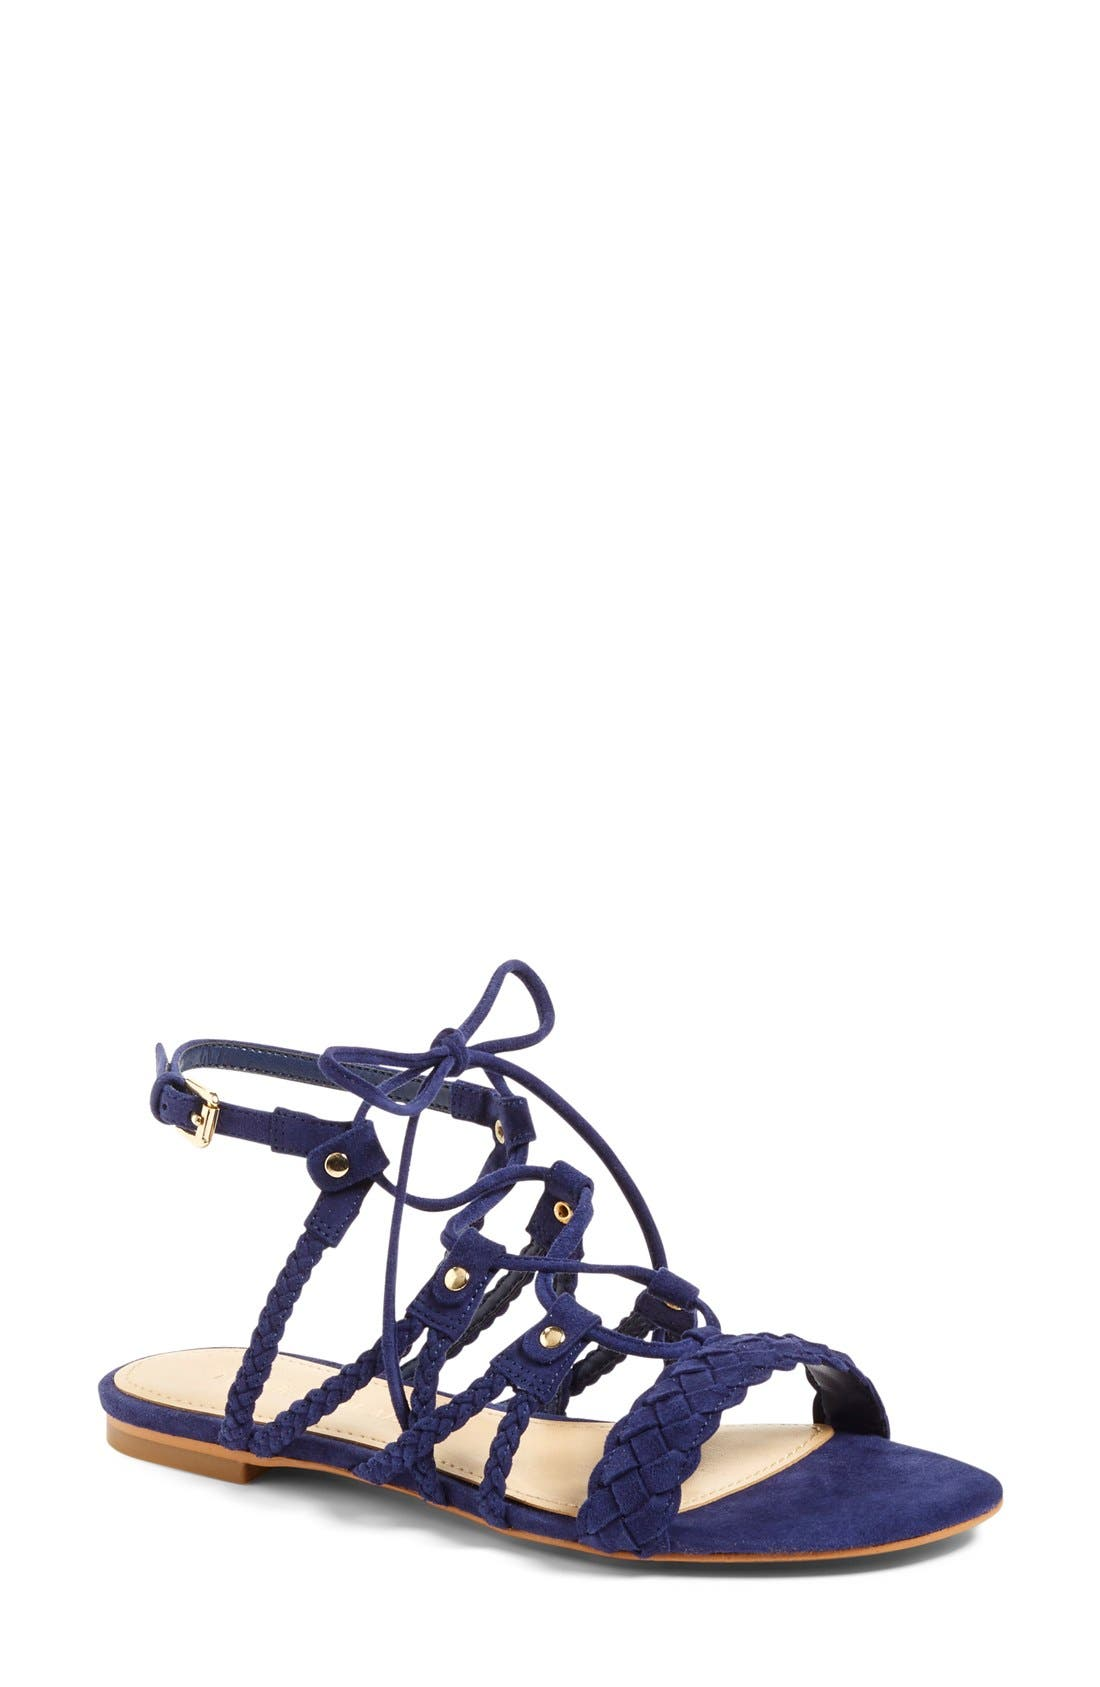 Alternate Image 1 Selected - Ivanka Trump 'Catti' Sandal (Women)